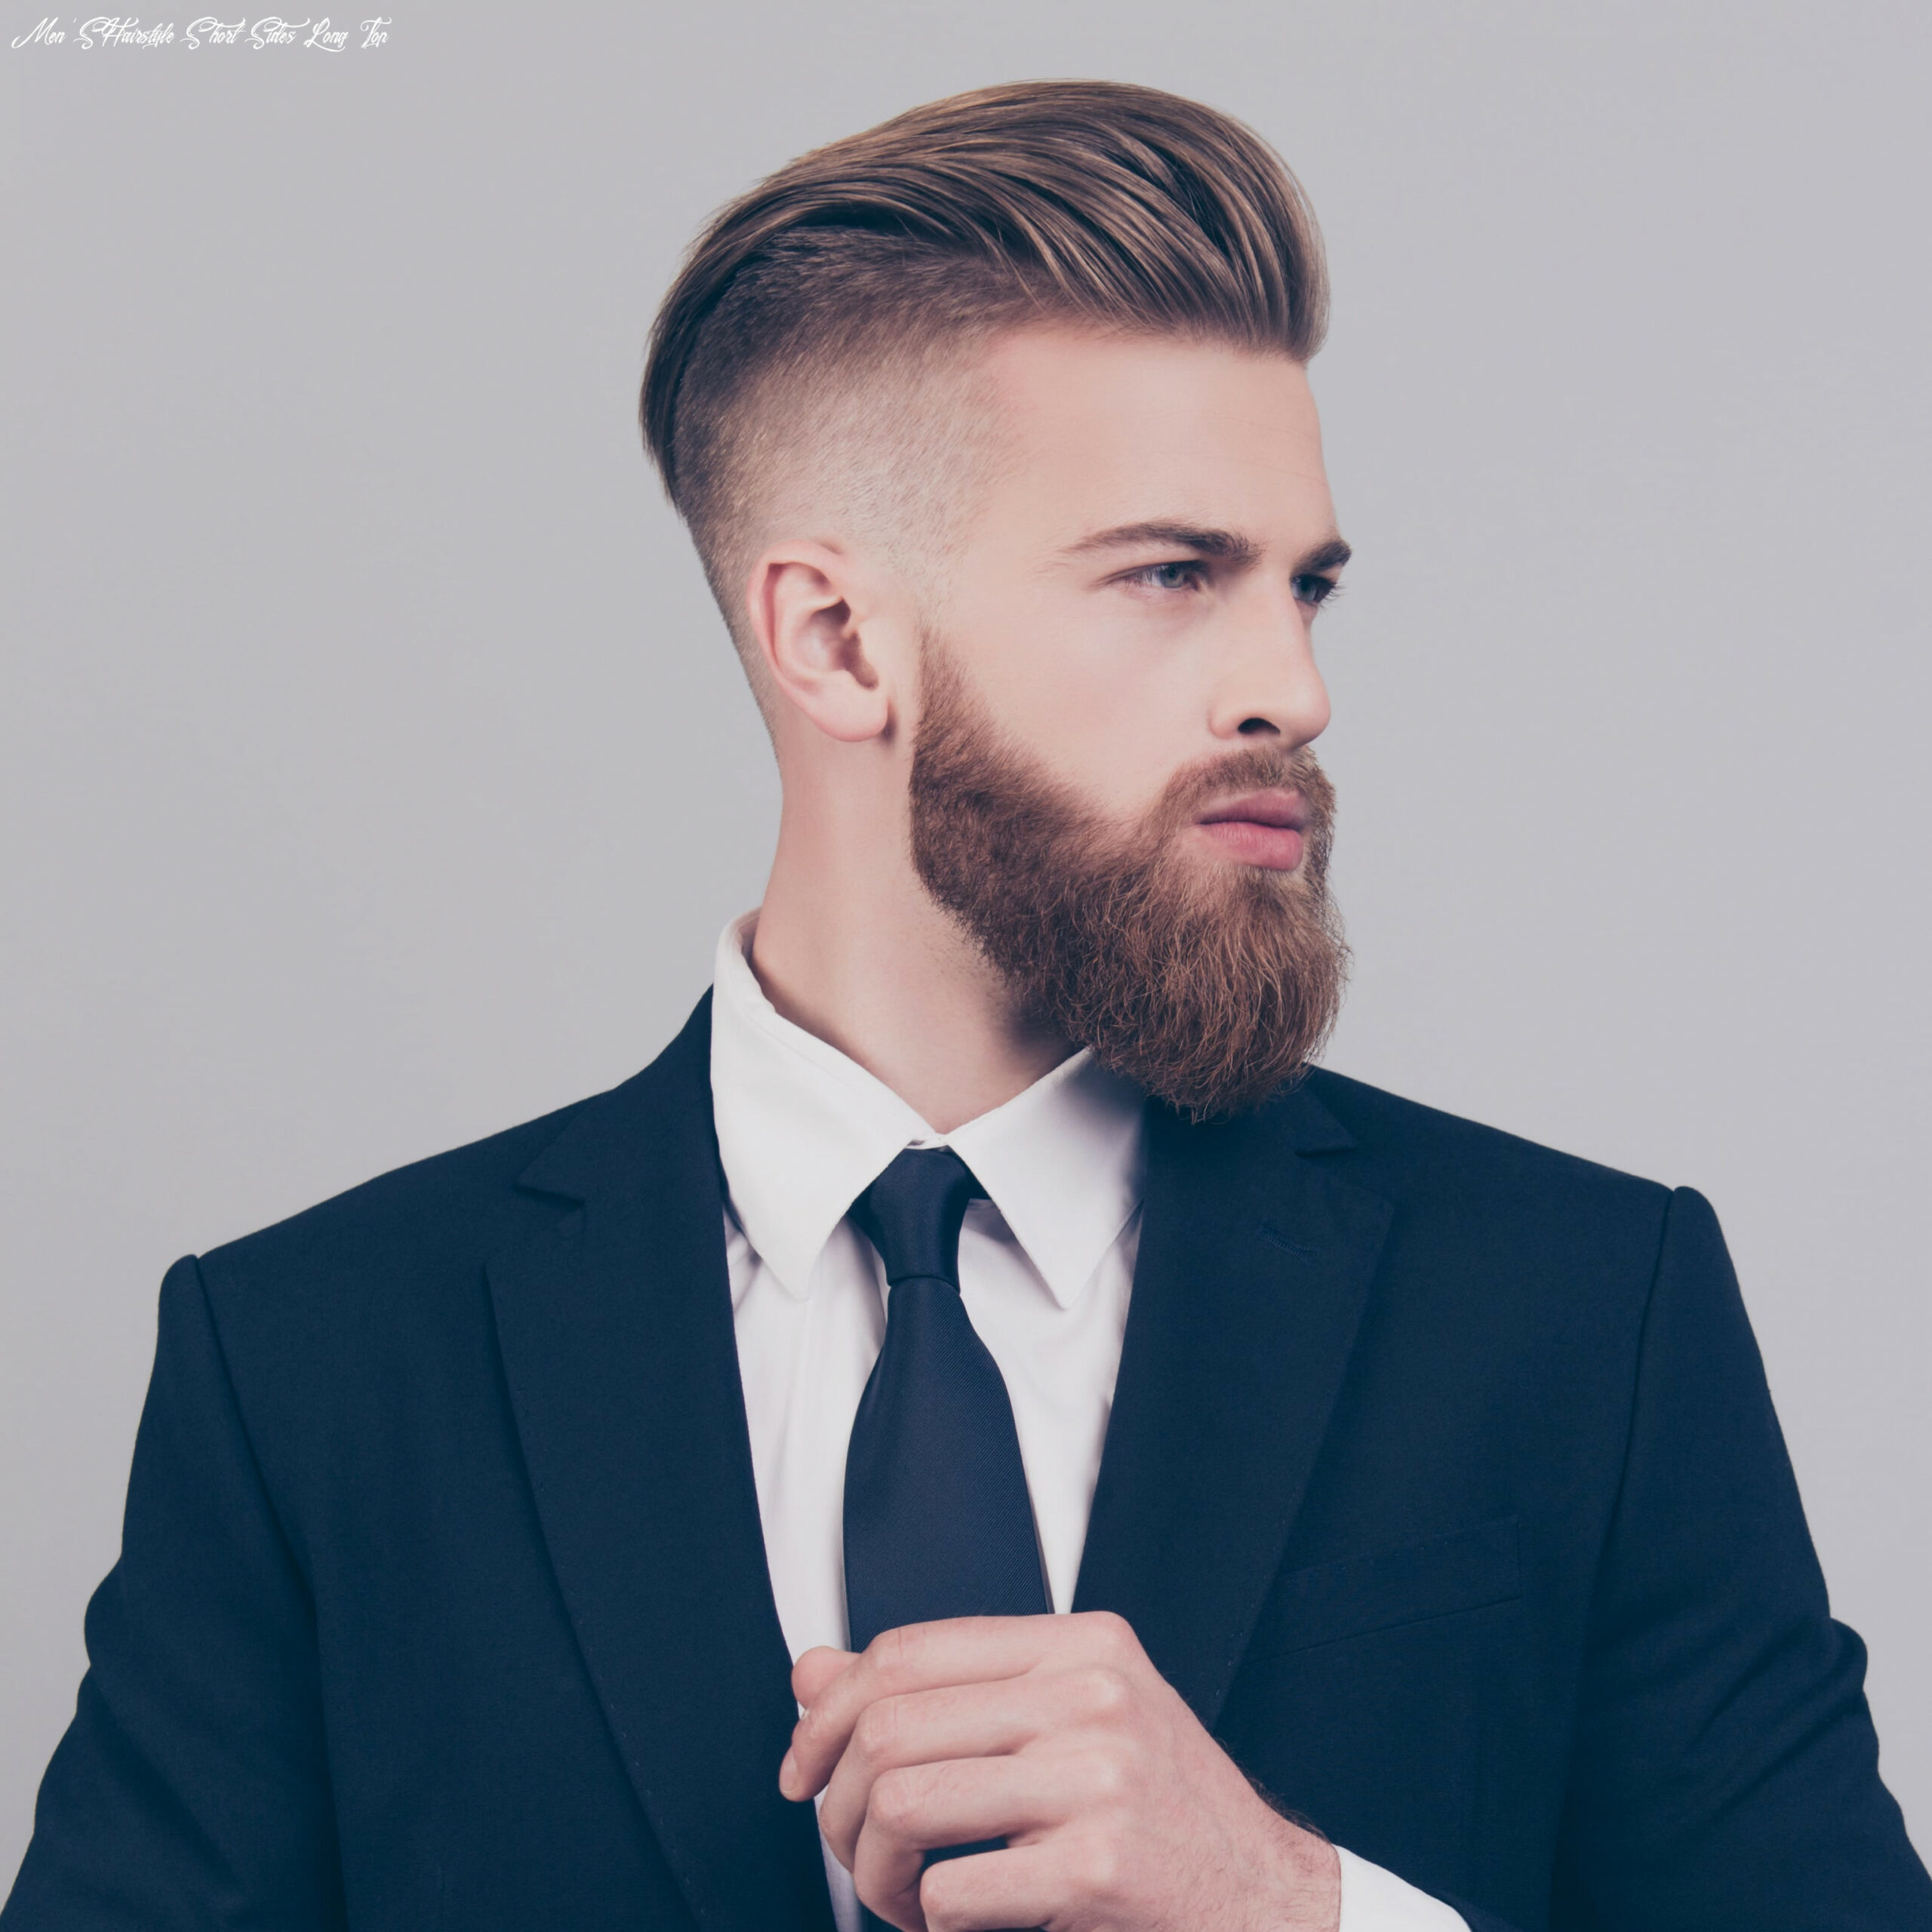 8+ Crew Cut Examples: A Great Choice for Modern Men